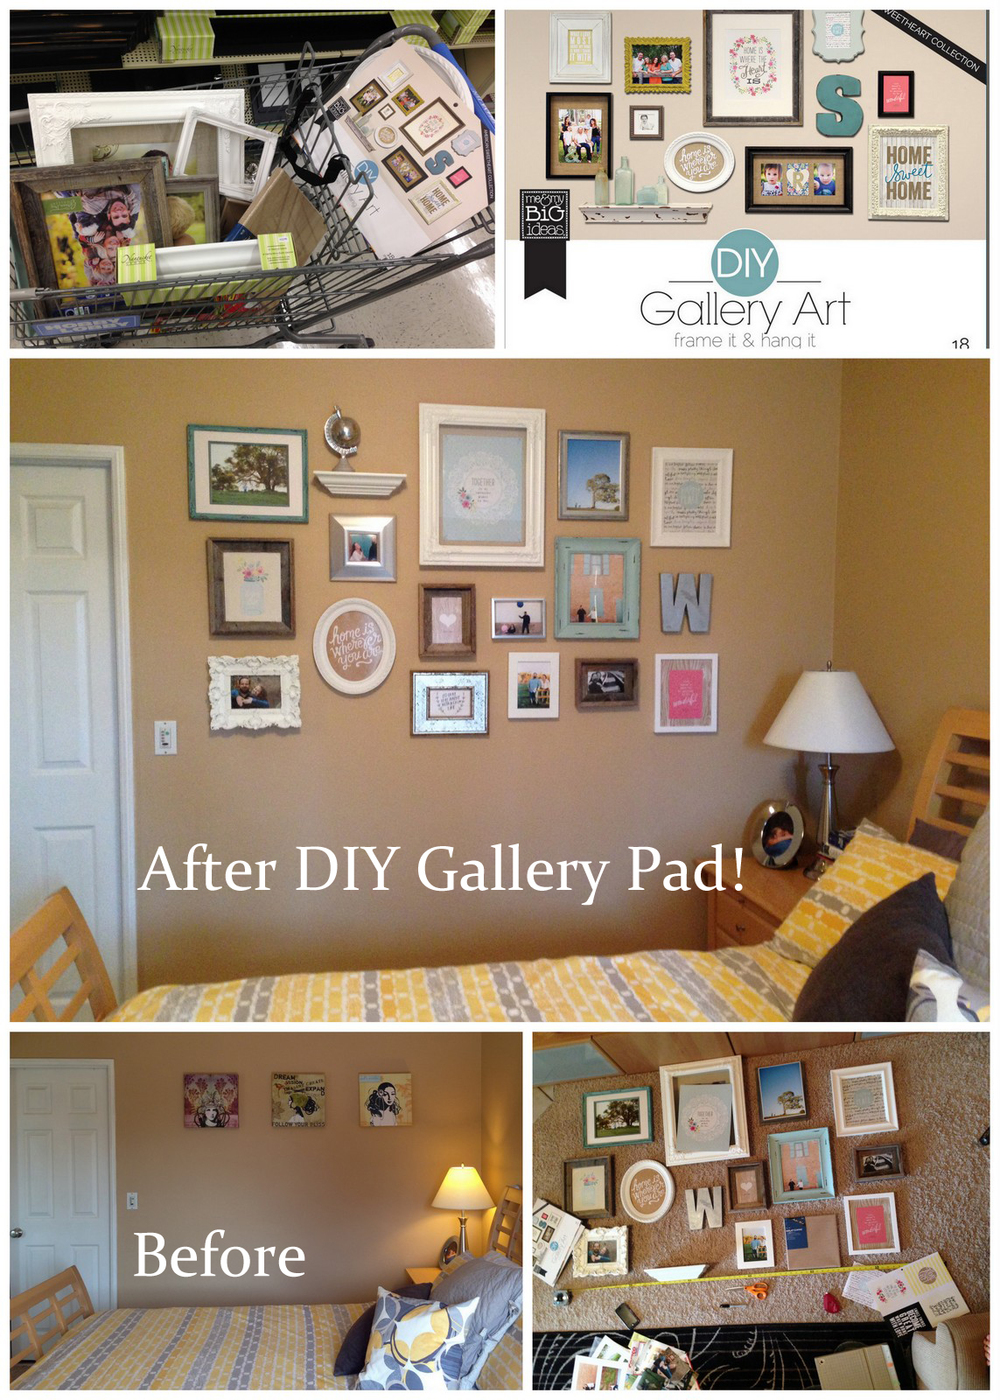 mambi DIY Wall Gallery Pads make doing a gallery wall yourself so easy!